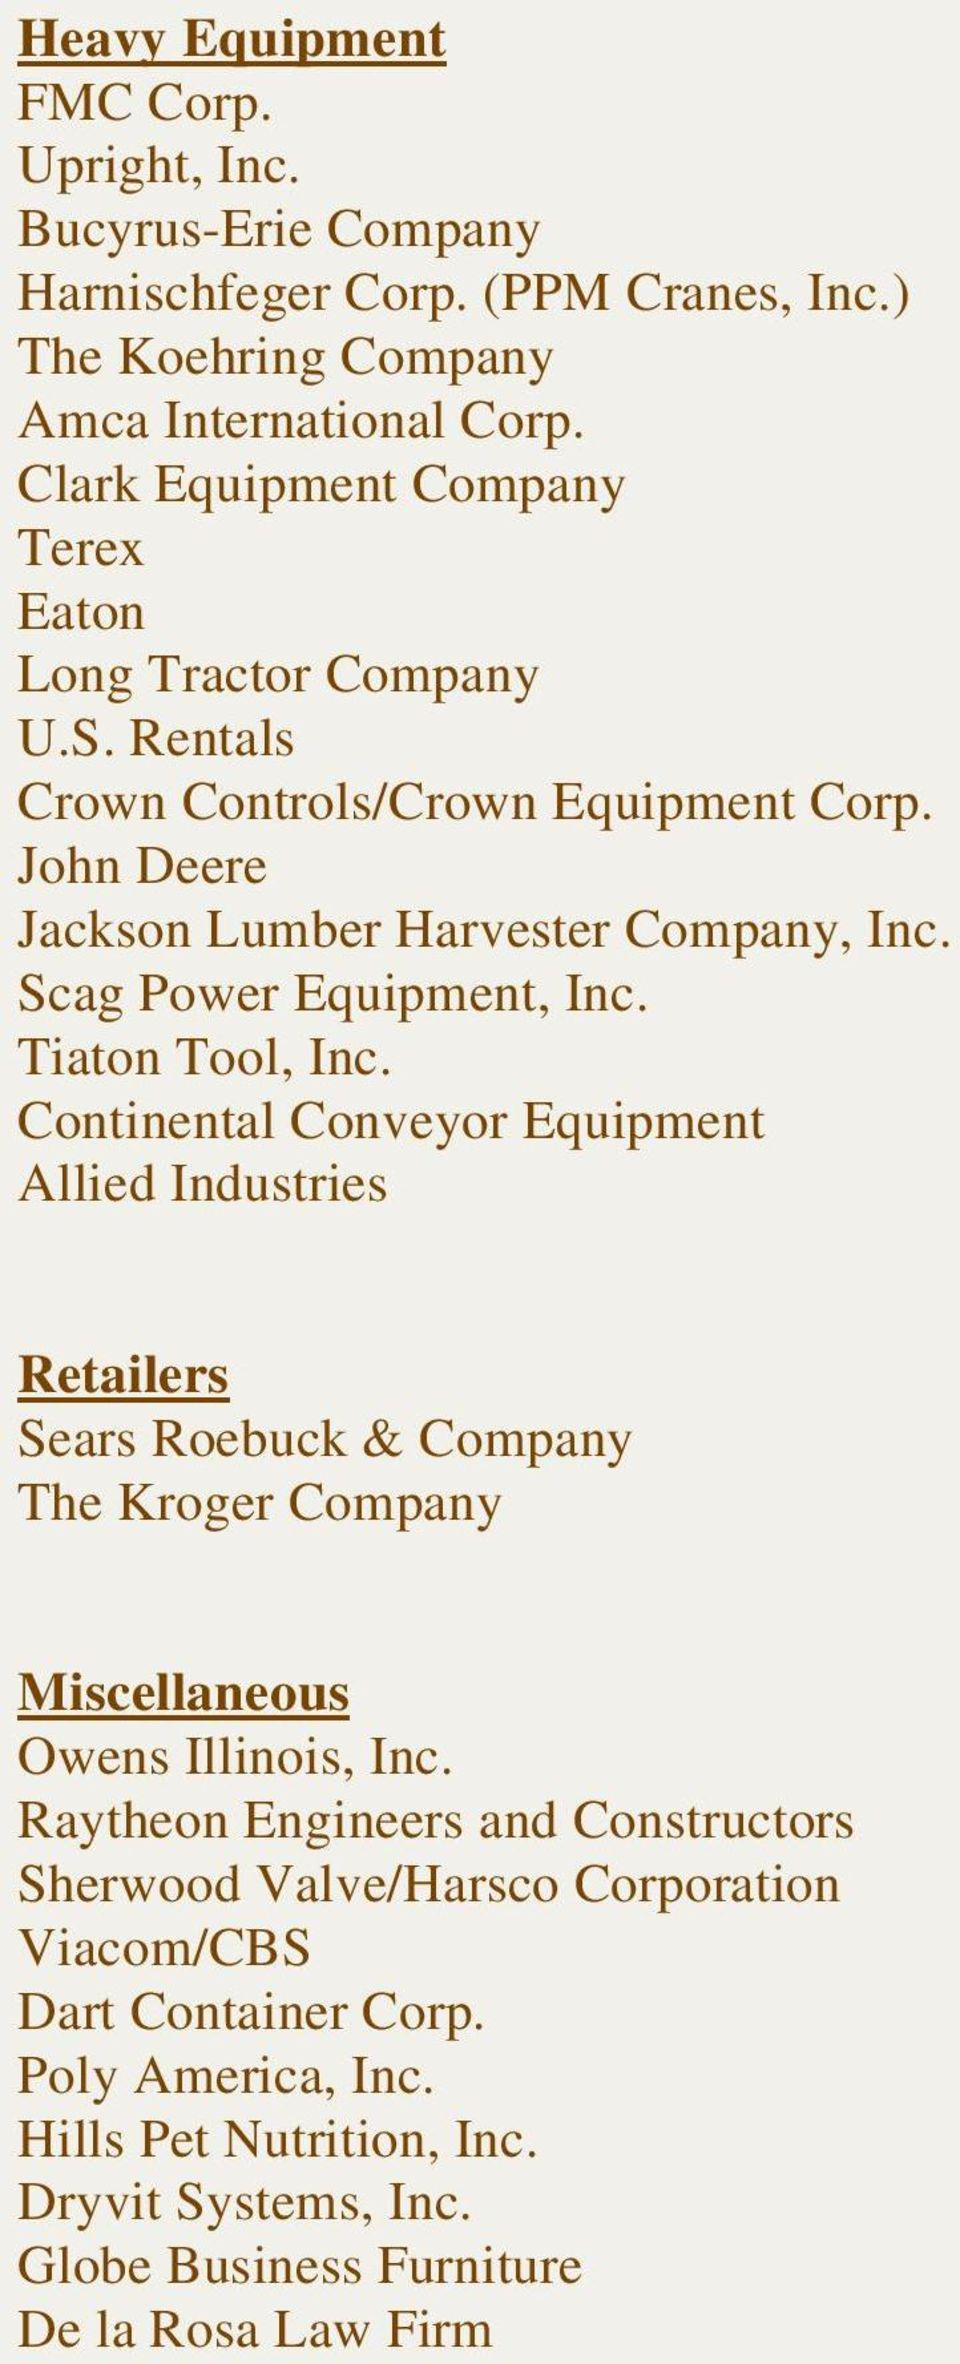 Scag Power Equipment, Inc. Tiaton Tool, Inc.